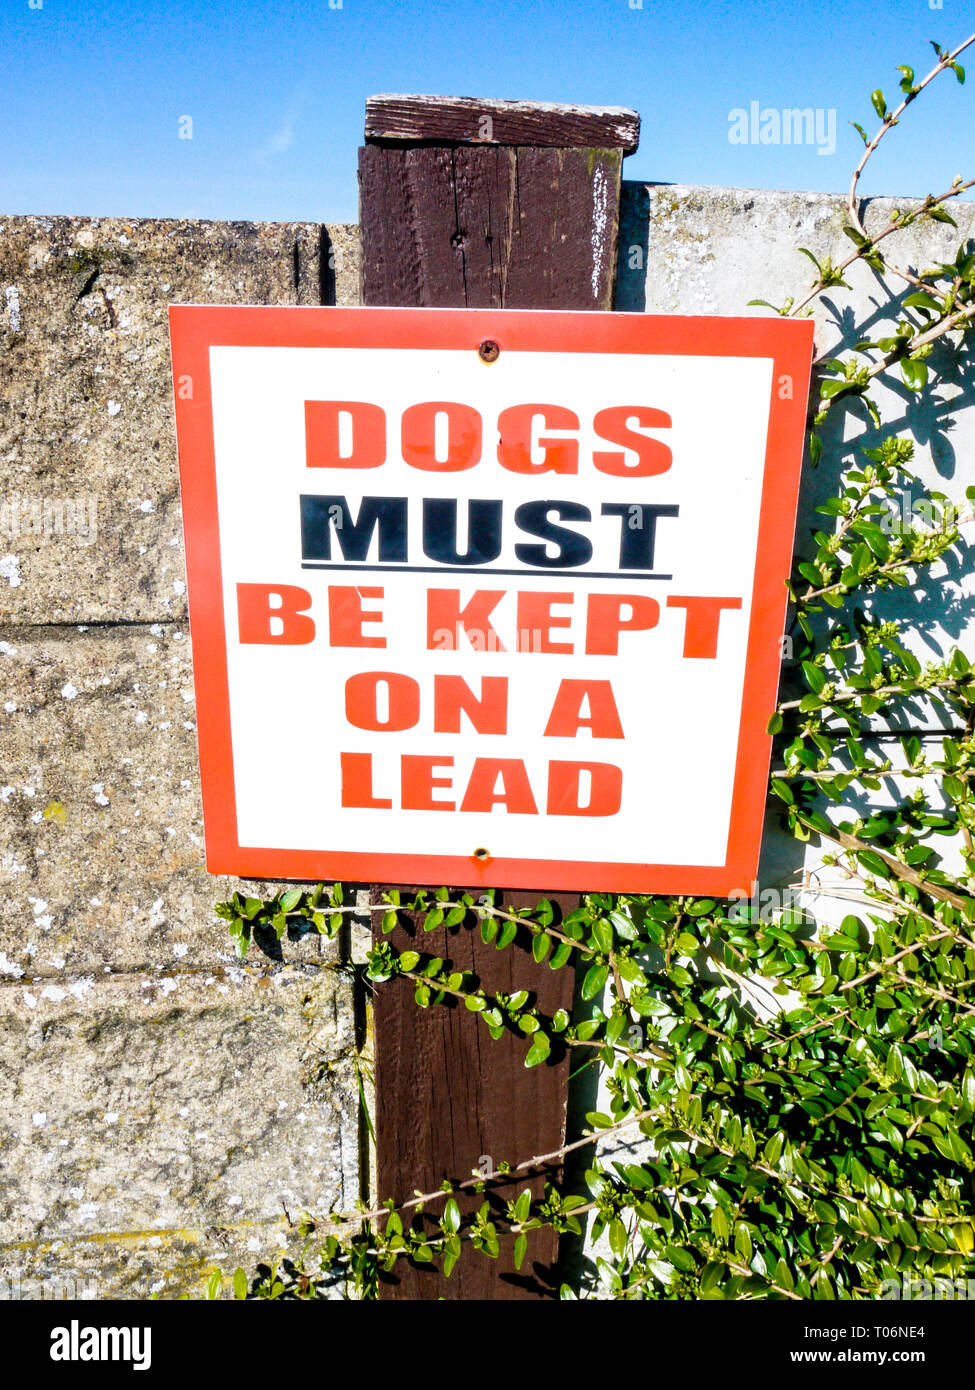 Sign 'Dogs must be kept on a lead' - Stock Image